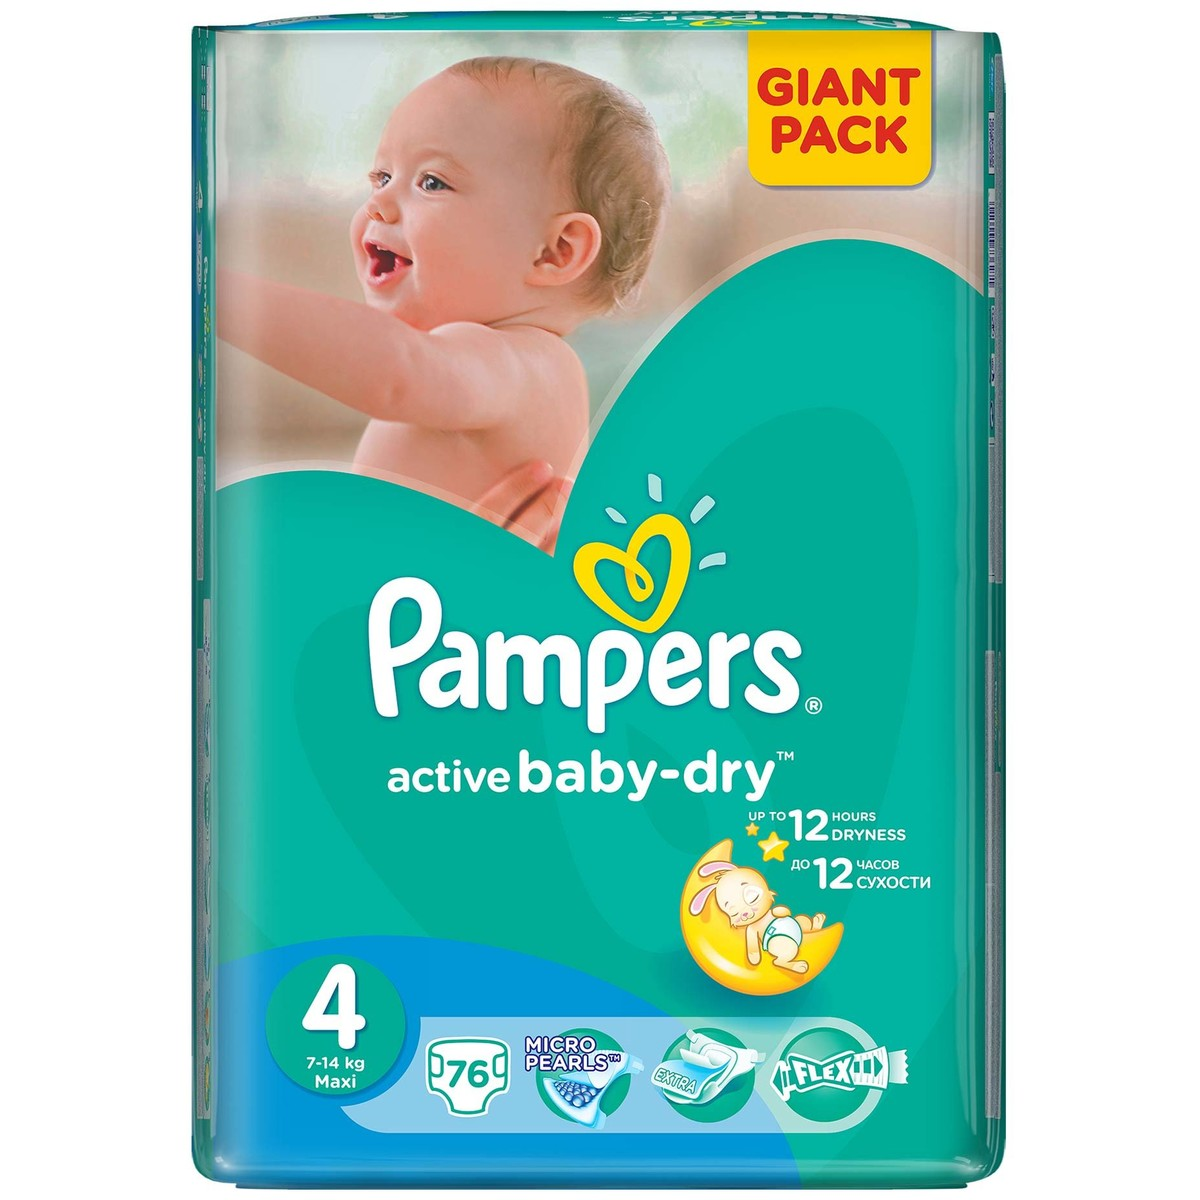 Scutece Pampers Active Baby 4 81527653, Giant Pack , 76 buc, 7-14 kg